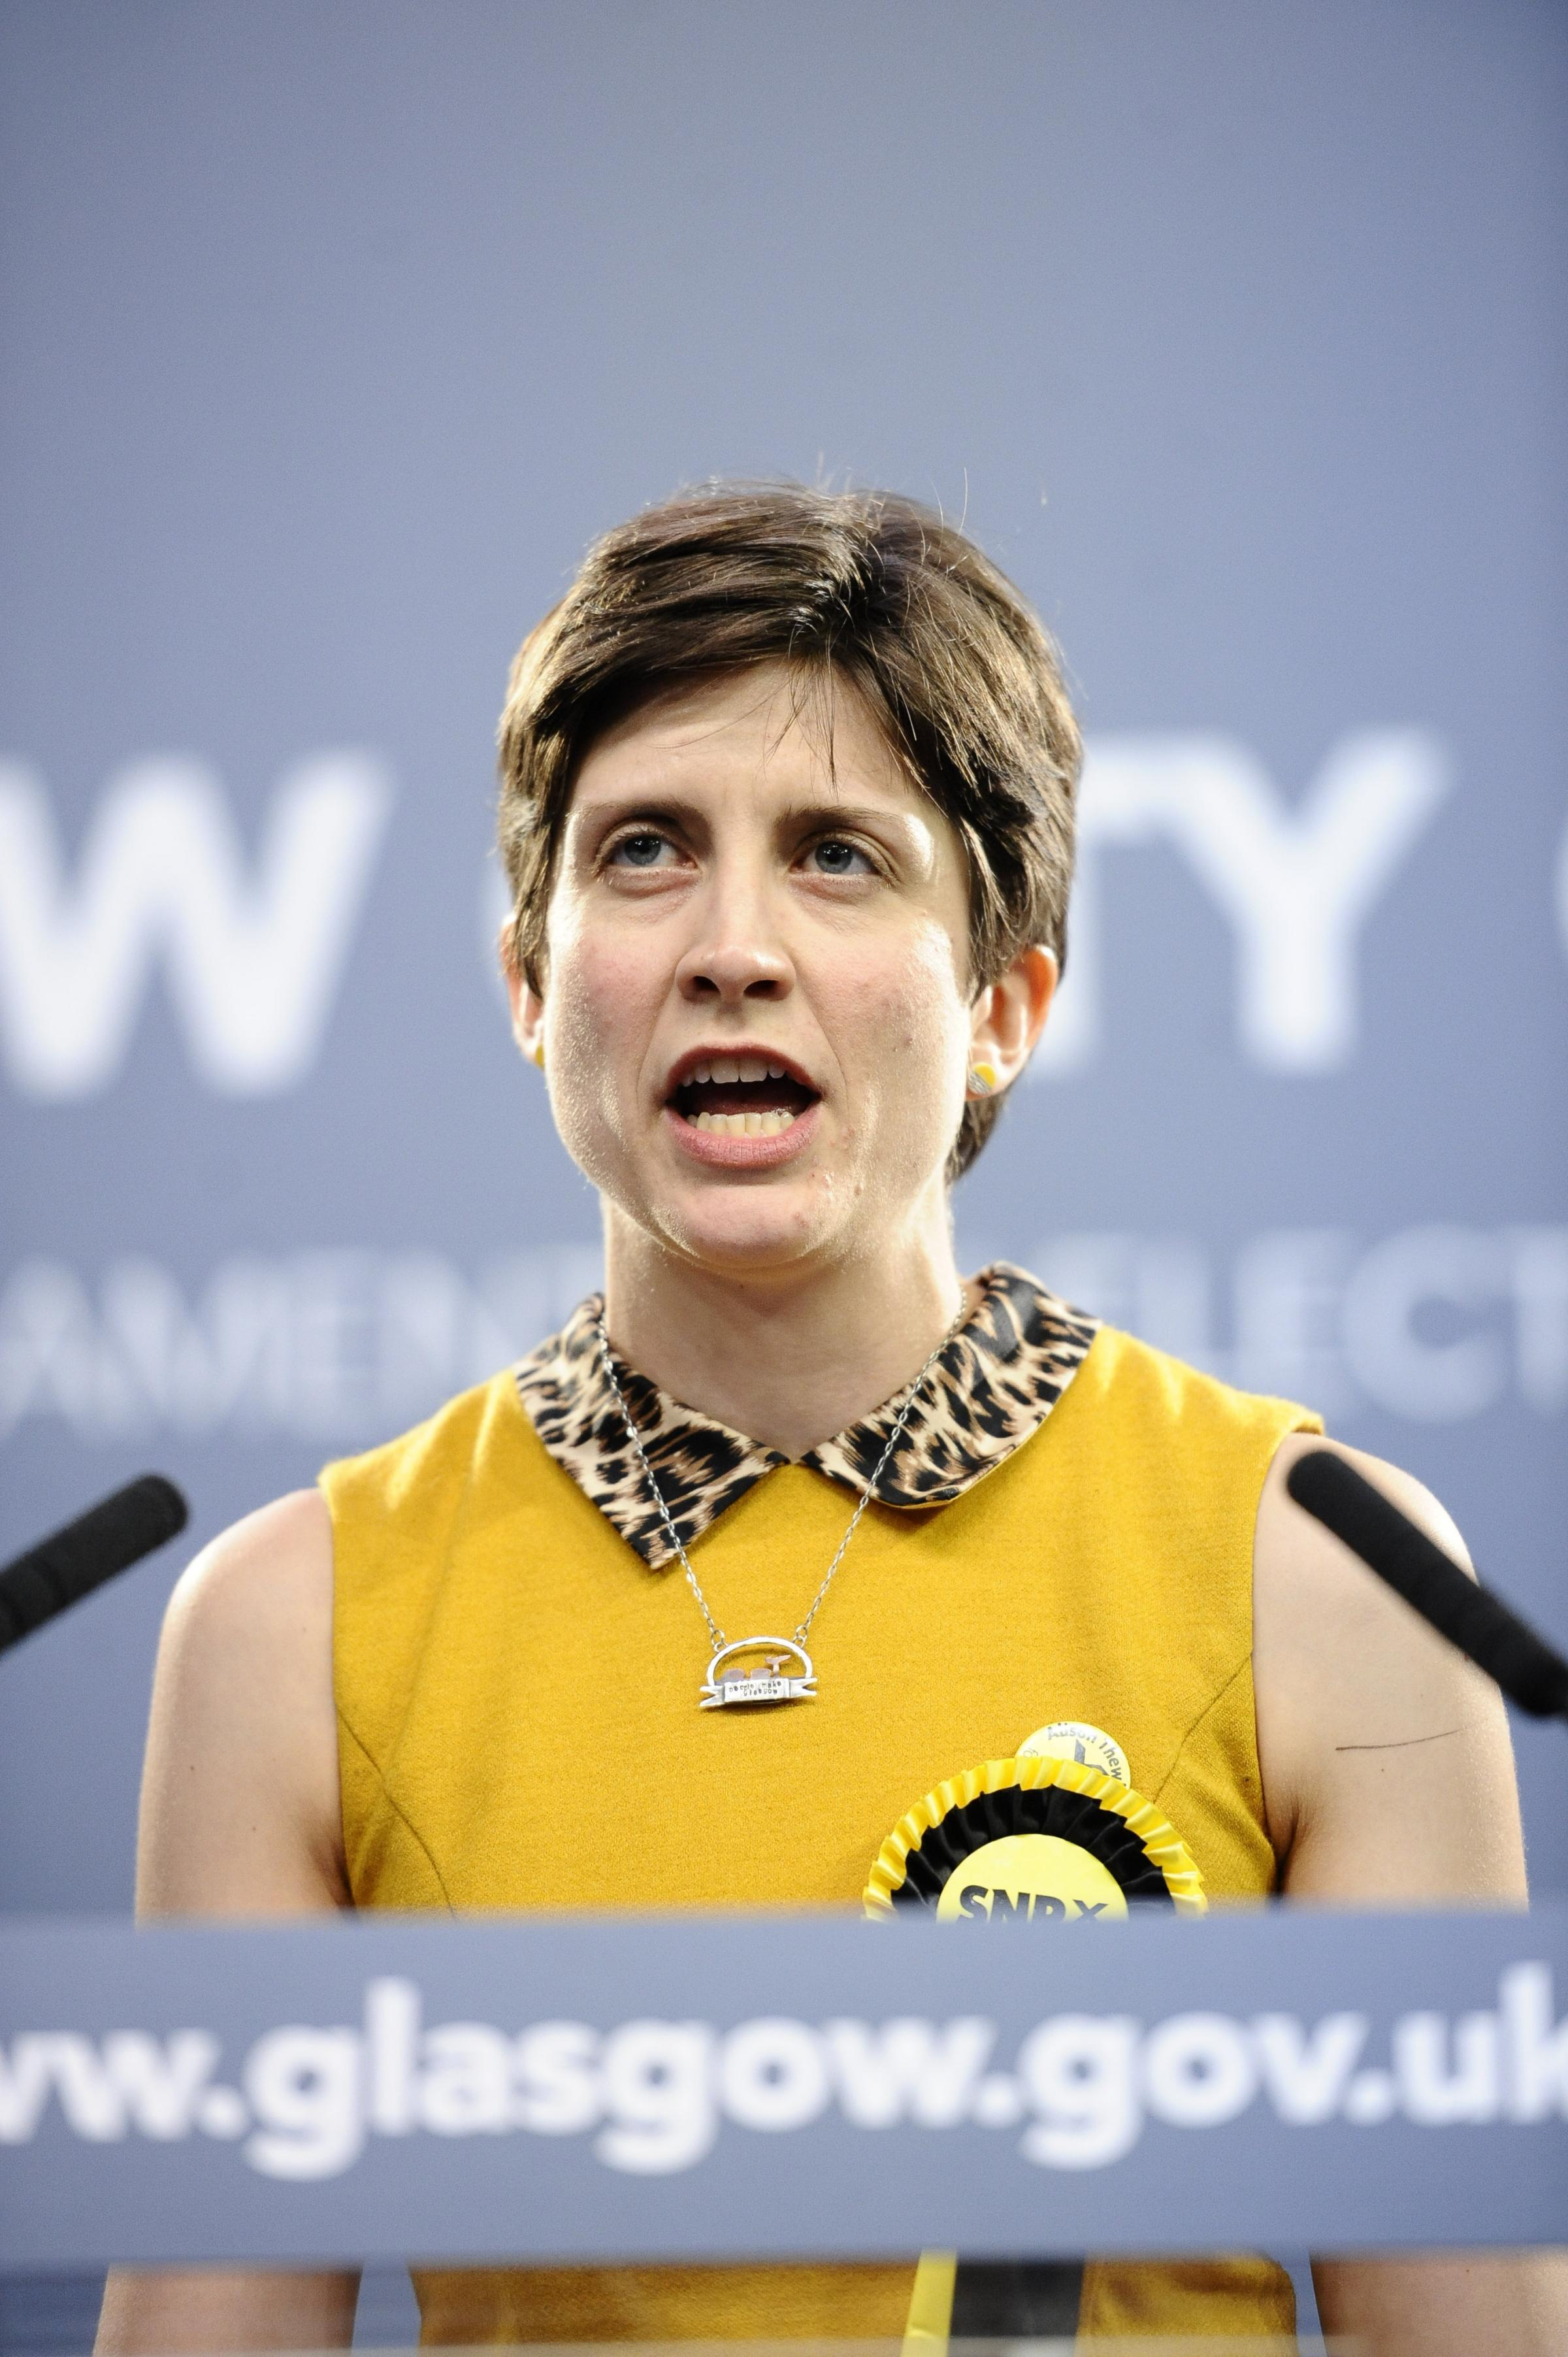 GLASGOW, SCOTLAND - JUNE 09: SNP's Alison Thewliss wins the Glasgow Central seat at the Emirates arena Glasgow count of the UK Parliamentary election on June 09, 2017 in Glasgow, Scotland. (Photo by Jamie Simpson/Herald & Times) - JS.